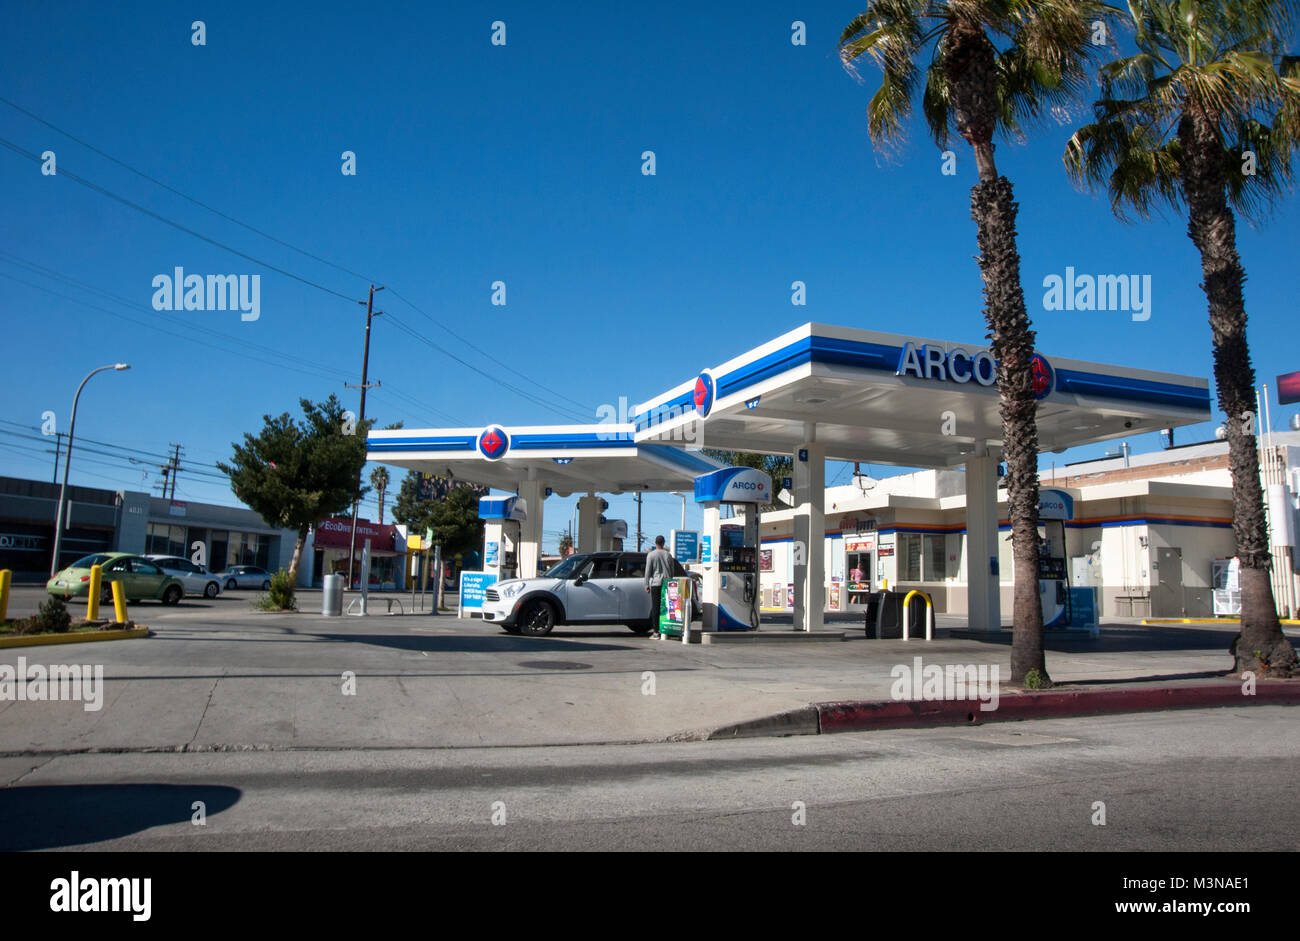 Arco Gas Stations >> Arco Gas Station In Los Angeles Ca Stock Photo 174416873